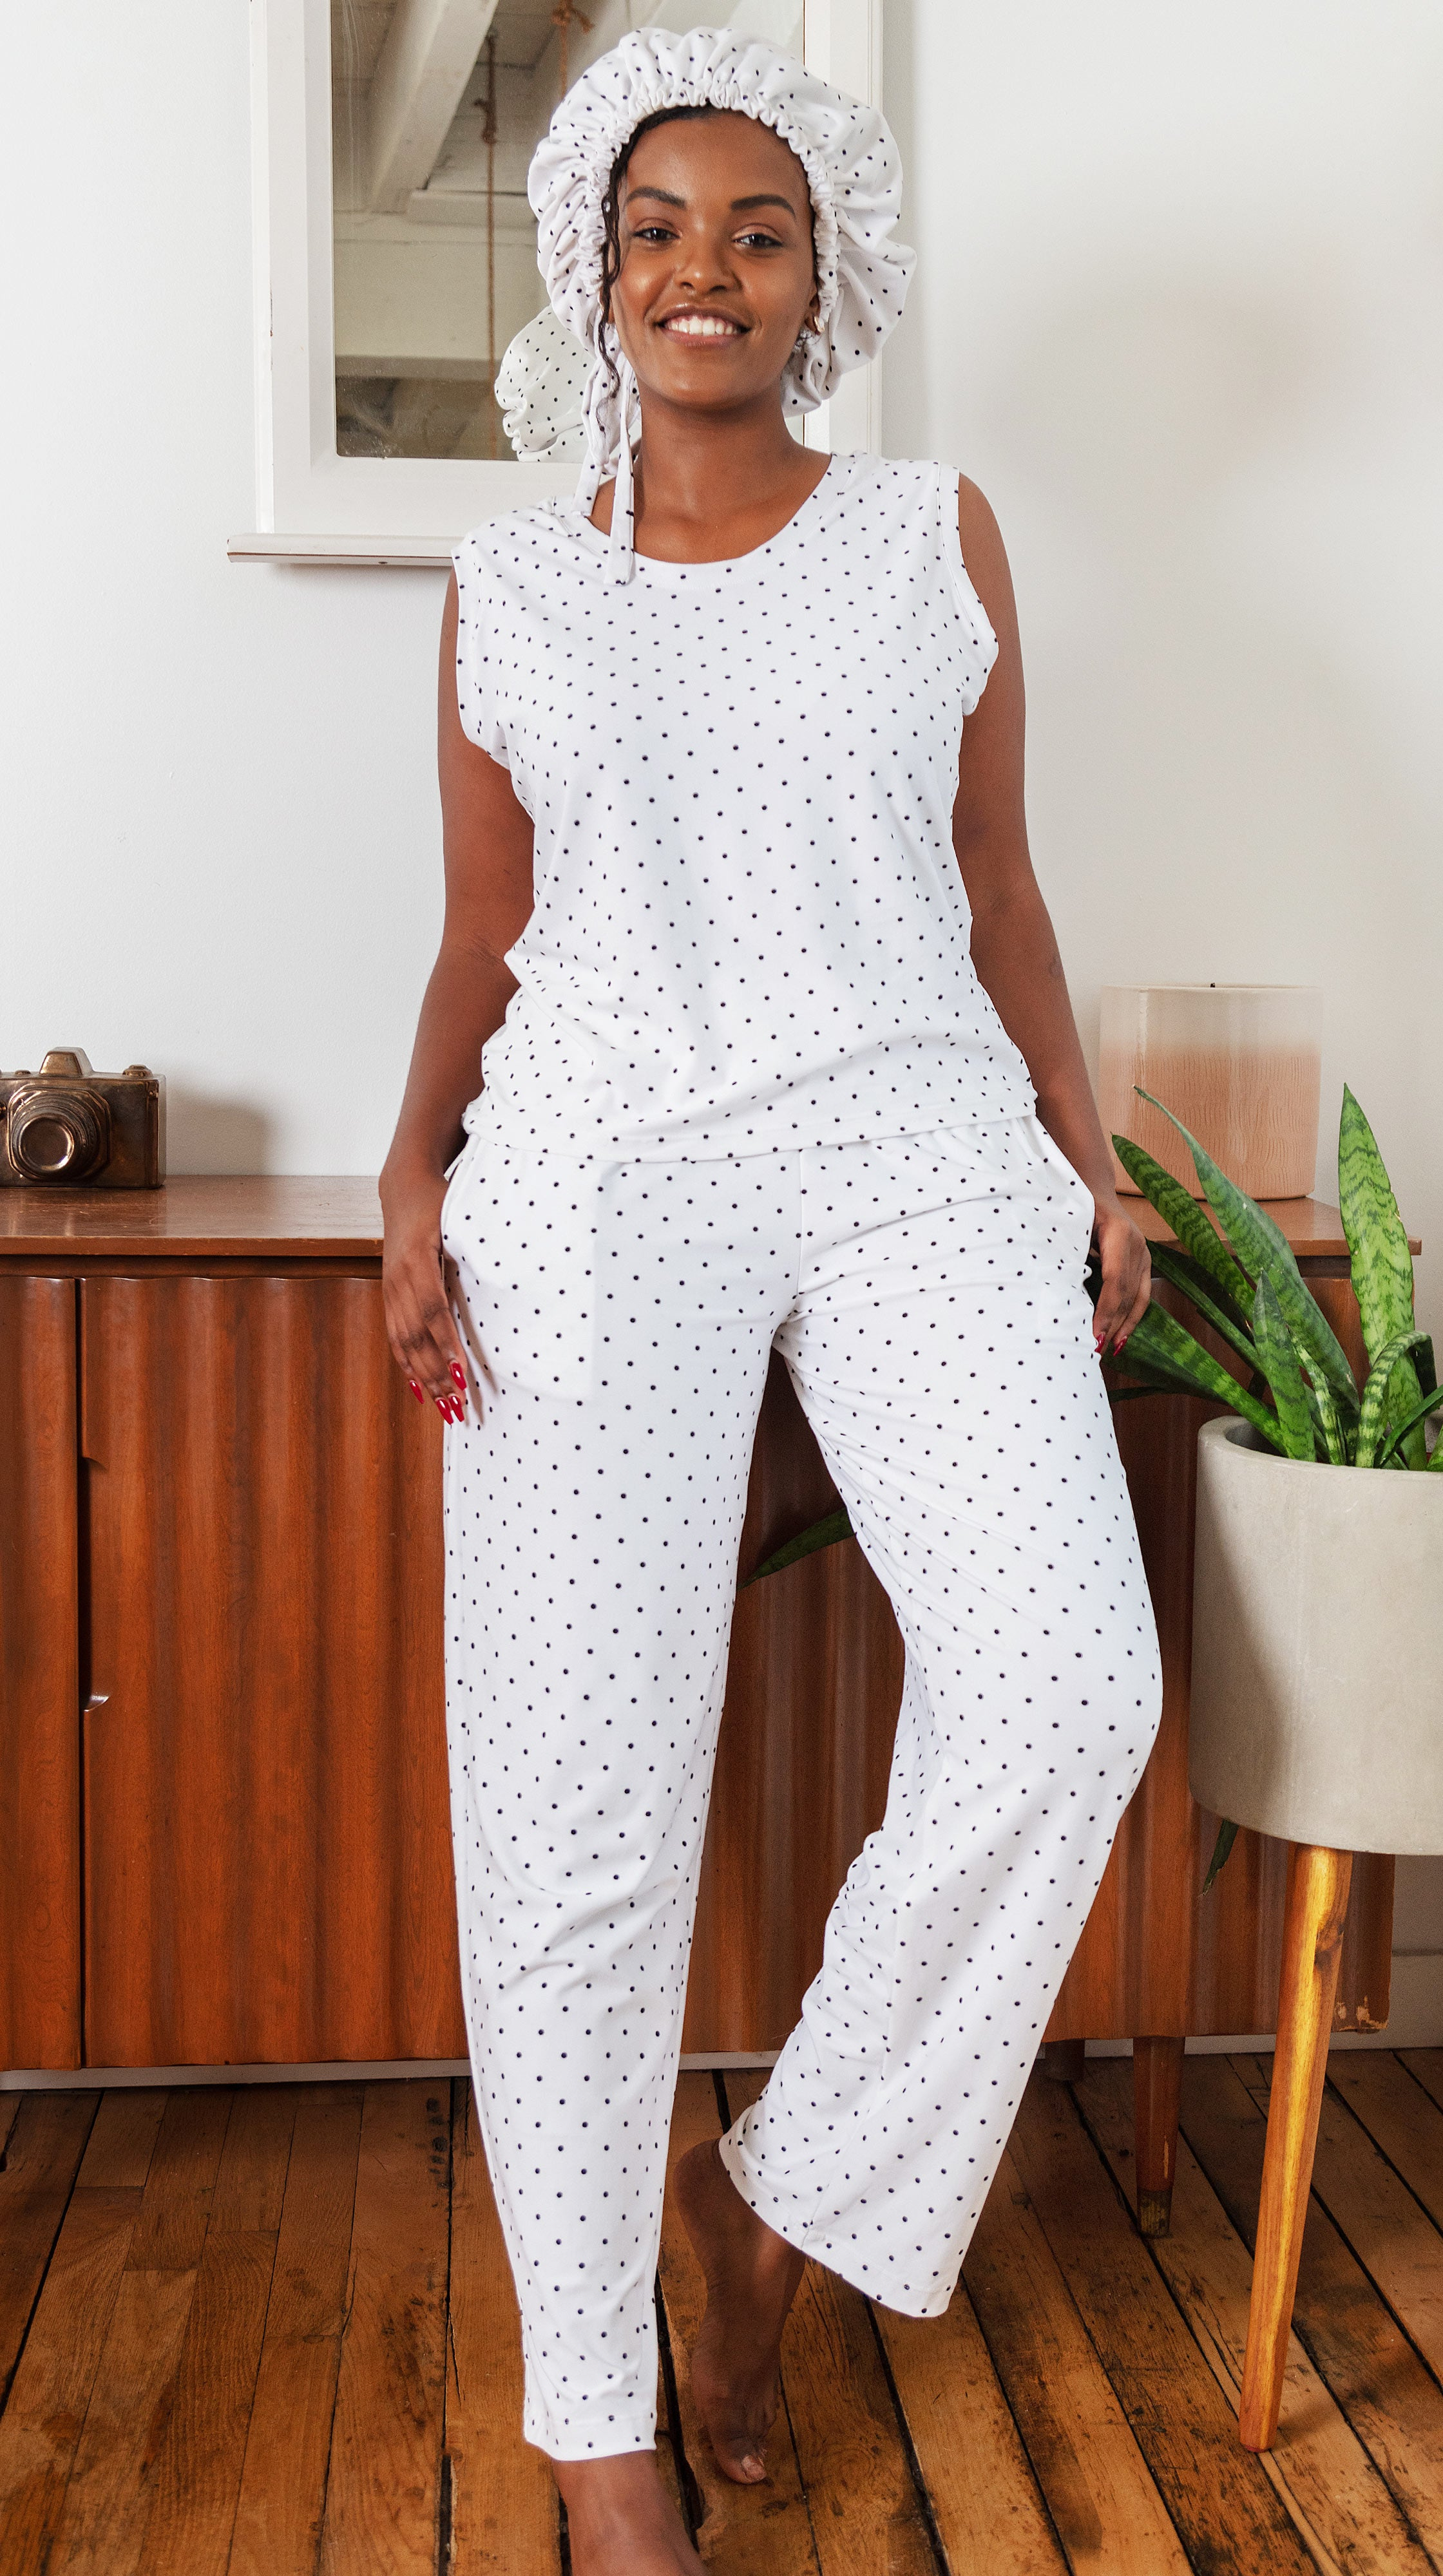 Ivory White with Black Polka Dot Tank Top by Sleep Sassy Loungewear Made in USA | Nineteenth Amendment